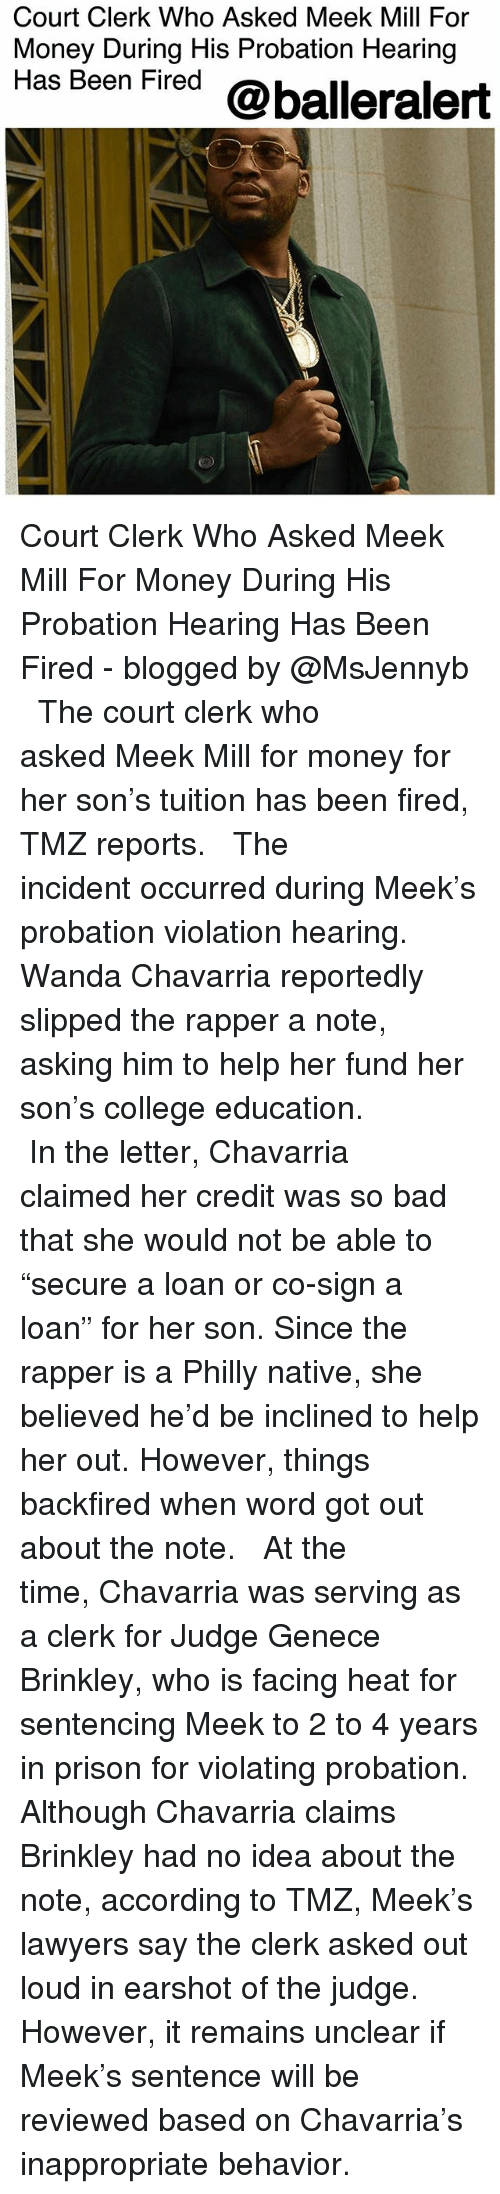 "Bad, College, and Meek Mill: Court Clerk Who Asked Meek Mill For  Money During His Probation Hearing  Has Been Fired @balleralert Court Clerk Who Asked Meek Mill For Money During His Probation Hearing Has Been Fired - blogged by @MsJennyb ⠀⠀⠀⠀⠀⠀⠀ ⠀⠀⠀⠀⠀⠀⠀ The court clerk who asked Meek Mill for money for her son's tuition has been fired, TMZ reports. ⠀⠀⠀⠀⠀⠀⠀ ⠀⠀⠀⠀⠀⠀⠀ The incident occurred during Meek's probation violation hearing. Wanda Chavarria reportedly slipped the rapper a note, asking him to help her fund her son's college education. ⠀⠀⠀⠀⠀⠀⠀ ⠀⠀⠀⠀⠀⠀⠀ In the letter, Chavarria claimed her credit was so bad that she would not be able to ""secure a loan or co-sign a loan"" for her son. Since the rapper is a Philly native, she believed he'd be inclined to help her out. However, things backfired when word got out about the note. ⠀⠀⠀⠀⠀⠀⠀ ⠀⠀⠀⠀⠀⠀⠀ At the time, Chavarria was serving as a clerk for Judge Genece Brinkley, who is facing heat for sentencing Meek to 2 to 4 years in prison for violating probation. Although Chavarria claims Brinkley had no idea about the note, according to TMZ, Meek's lawyers say the clerk asked out loud in earshot of the judge. However, it remains unclear if Meek's sentence will be reviewed based on Chavarria's inappropriate behavior."